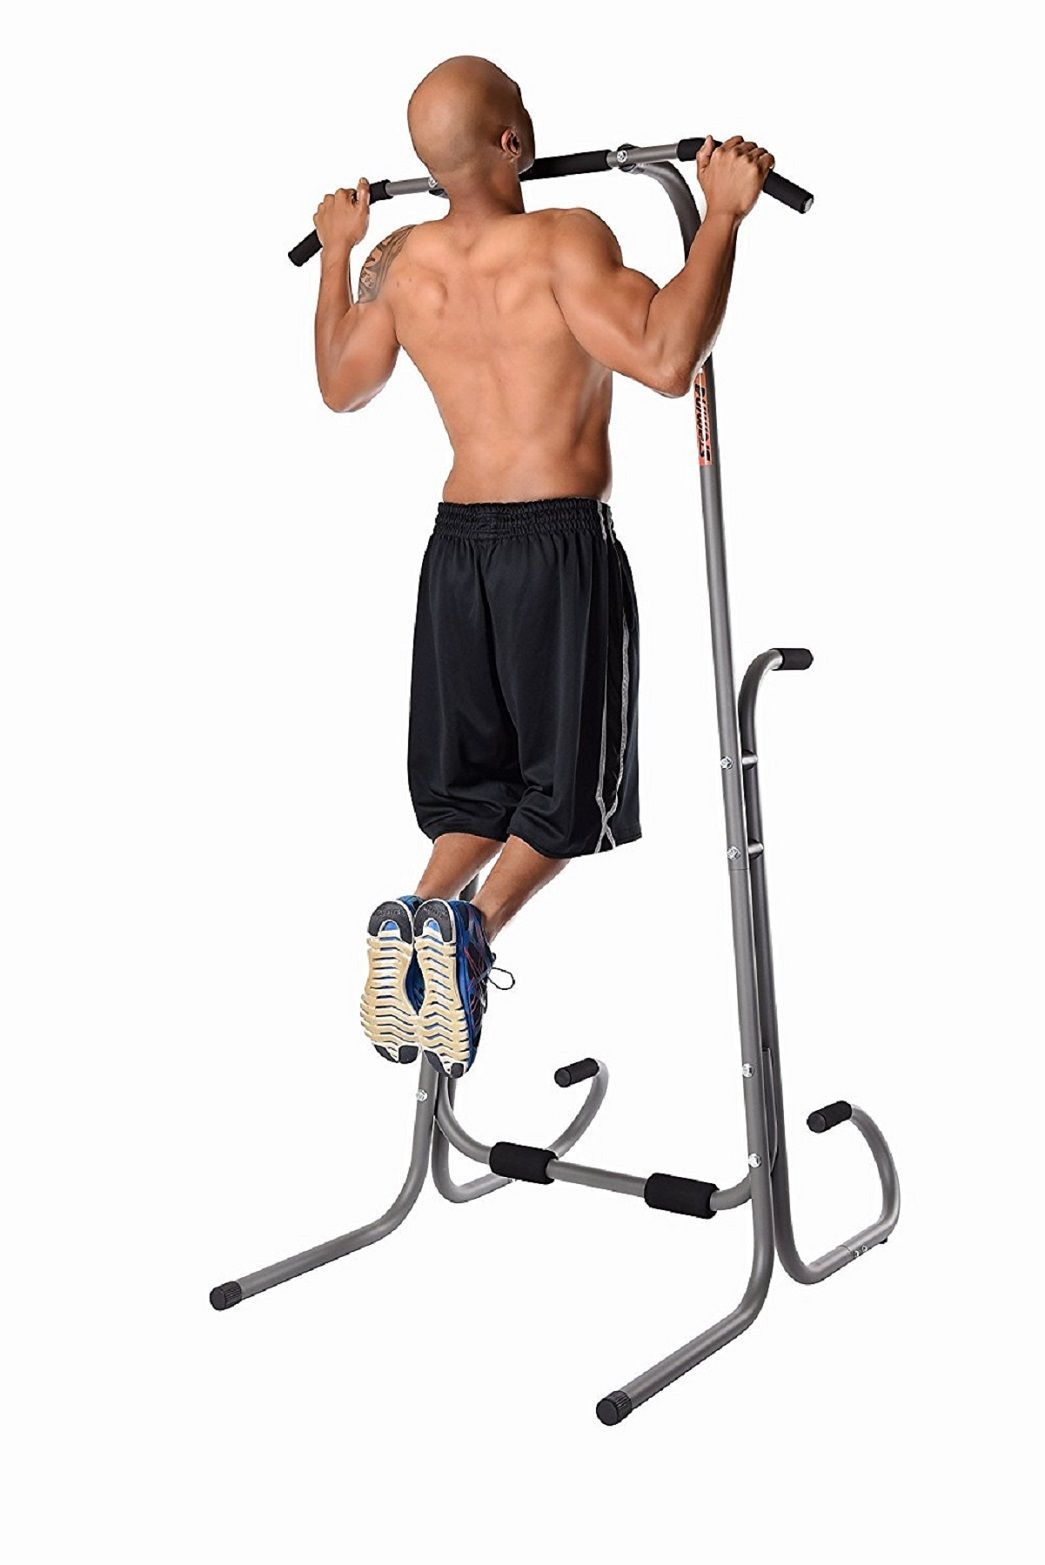 Abs workout at home gym equipment chest body strength building